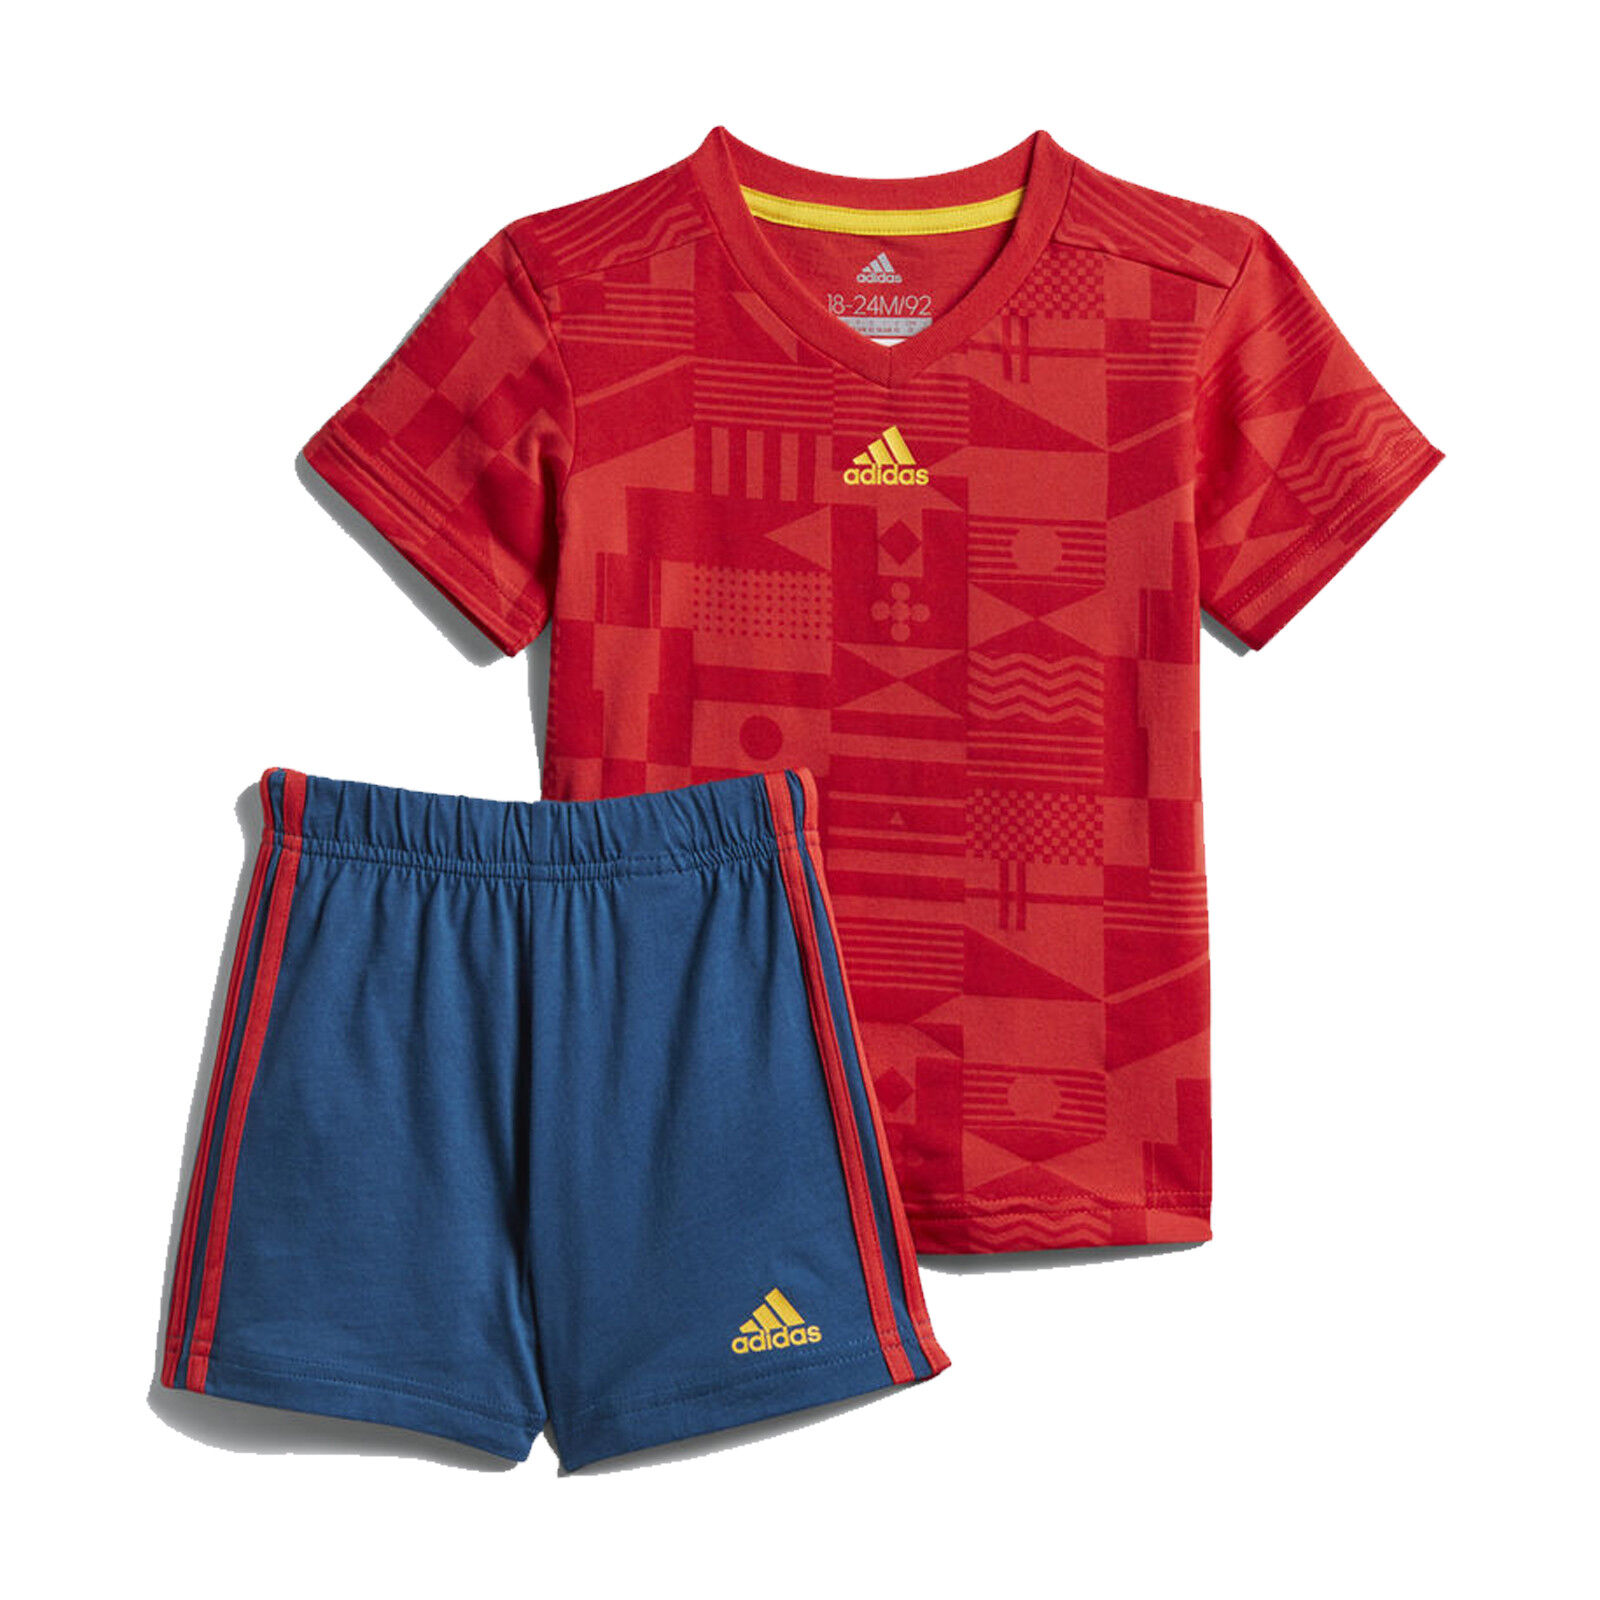 Adidas Outfit Baby Test Vergleich Adidas Outfit Baby